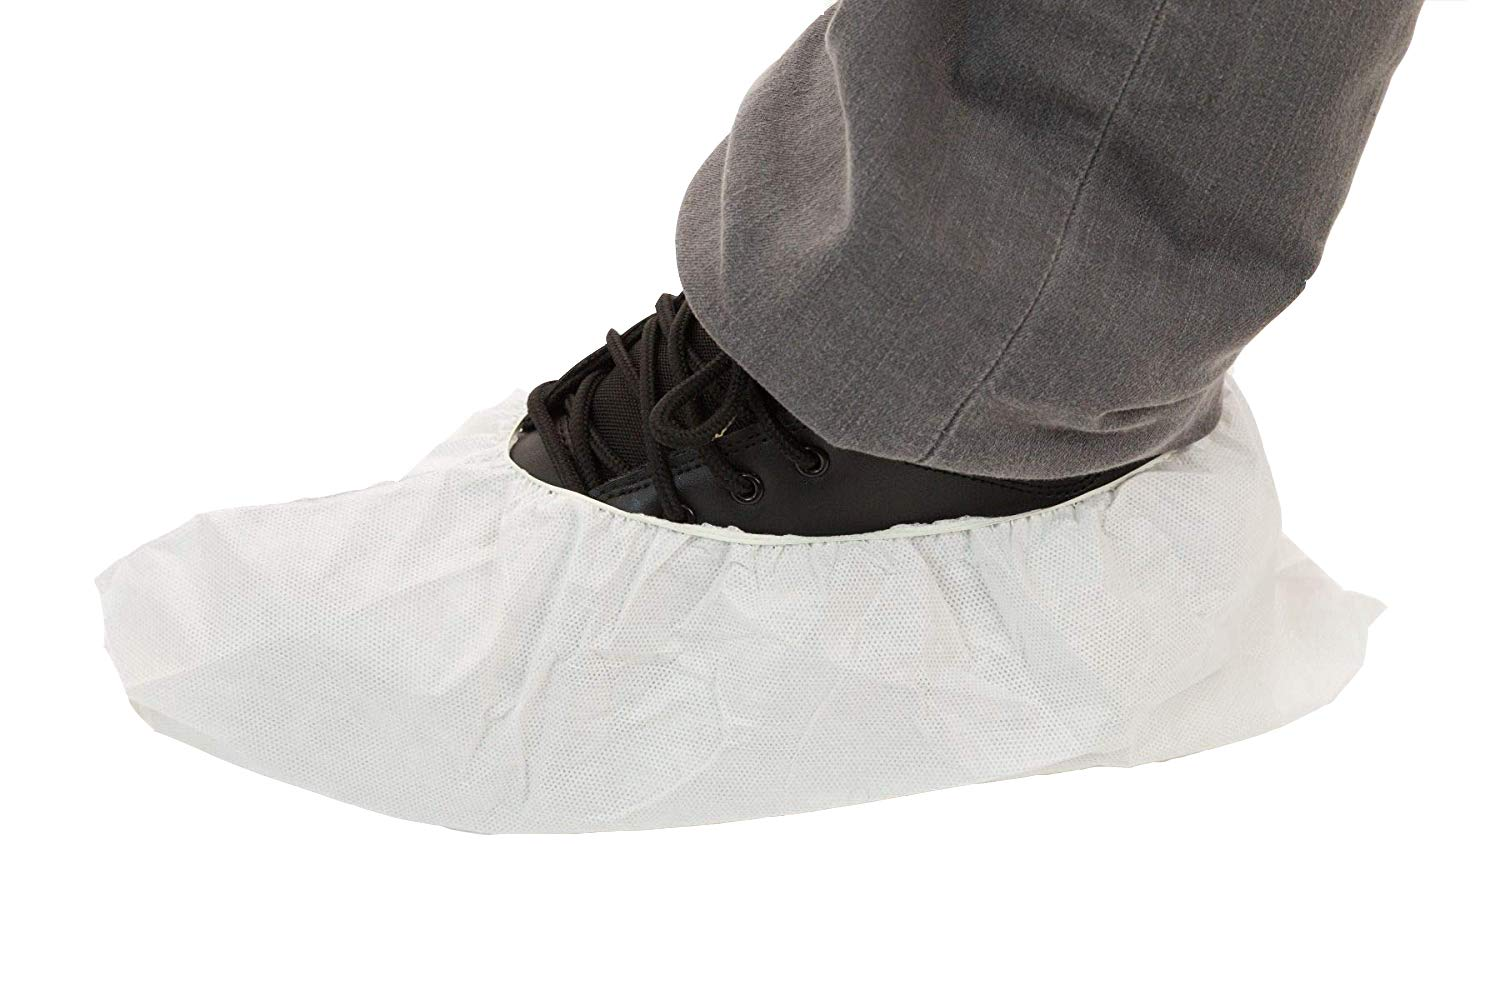 Body Filter 95+ Disposable Skid Resistant Shoe Covers (White) | Breathable Cool Material - Protective Body Suit for Dust, Spray Paint, Insulation, and More (Black Soles, Case of 200)